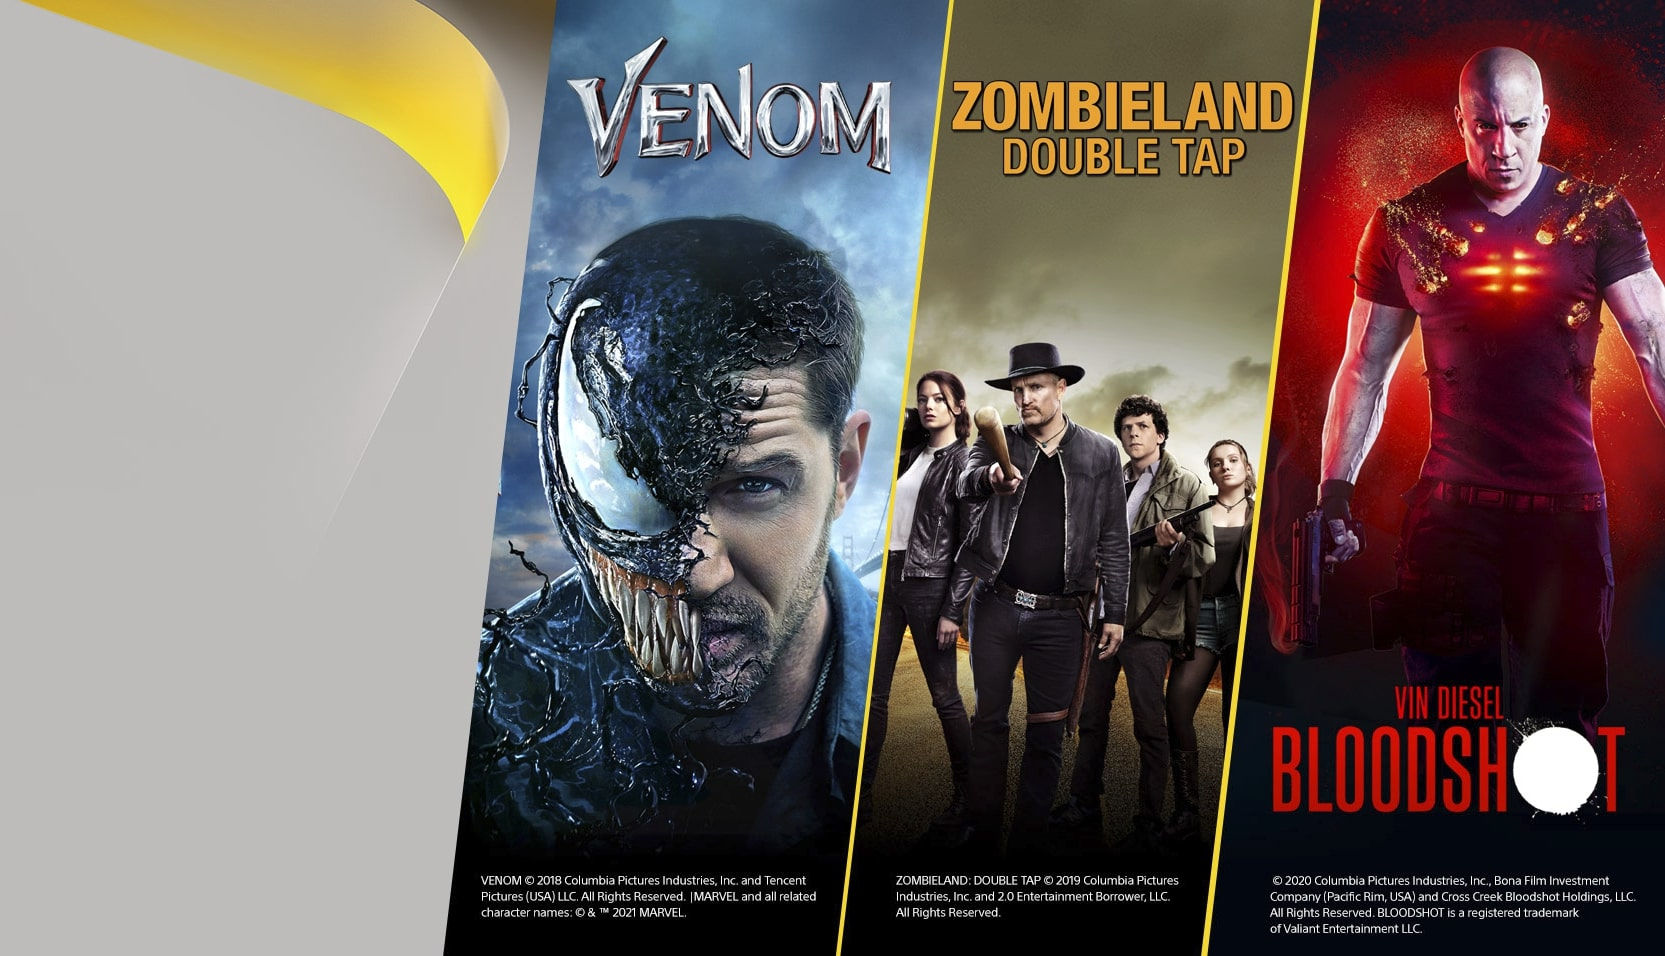 what films you can find in playstation plus video pass